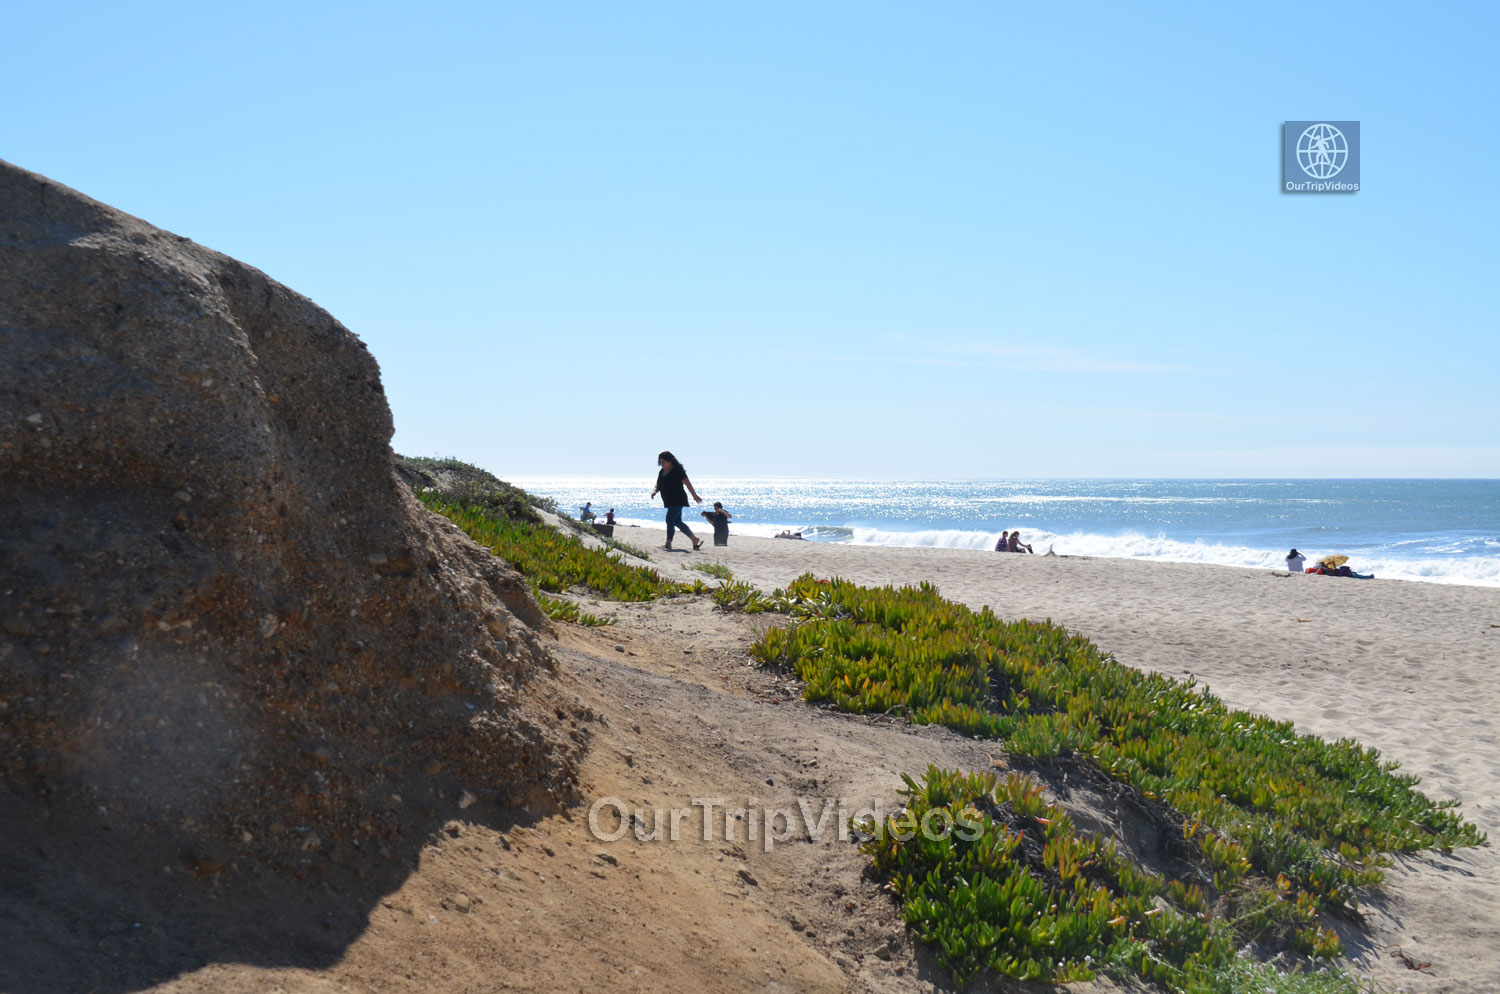 State Beach(Francis Beach), Half Moon Bay, CA, USA - Picture 25 of 25